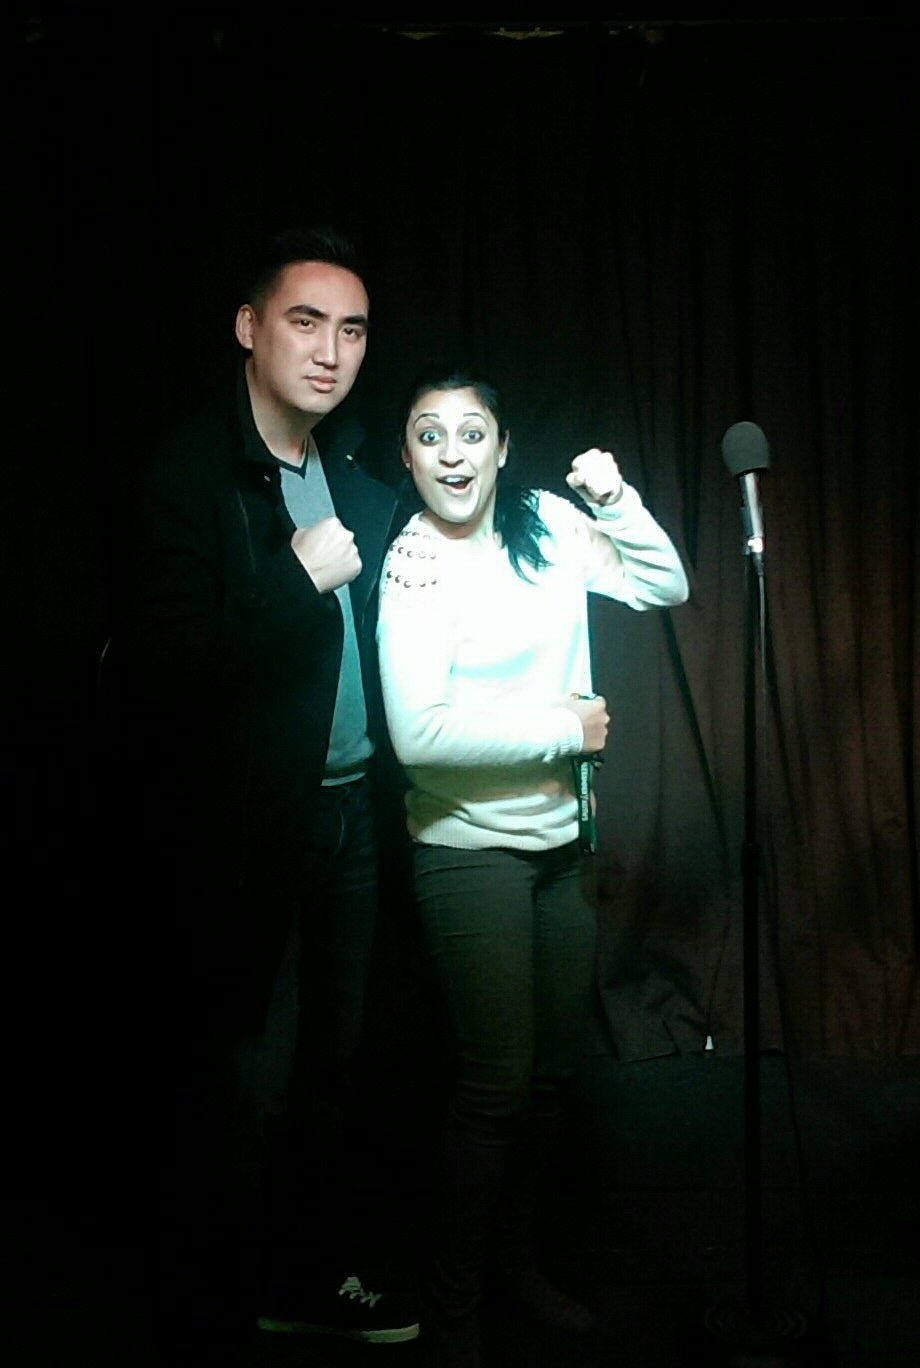 Opening for Aastha Lal on hr first one-woman show. Not a bad way to debut in Toronto